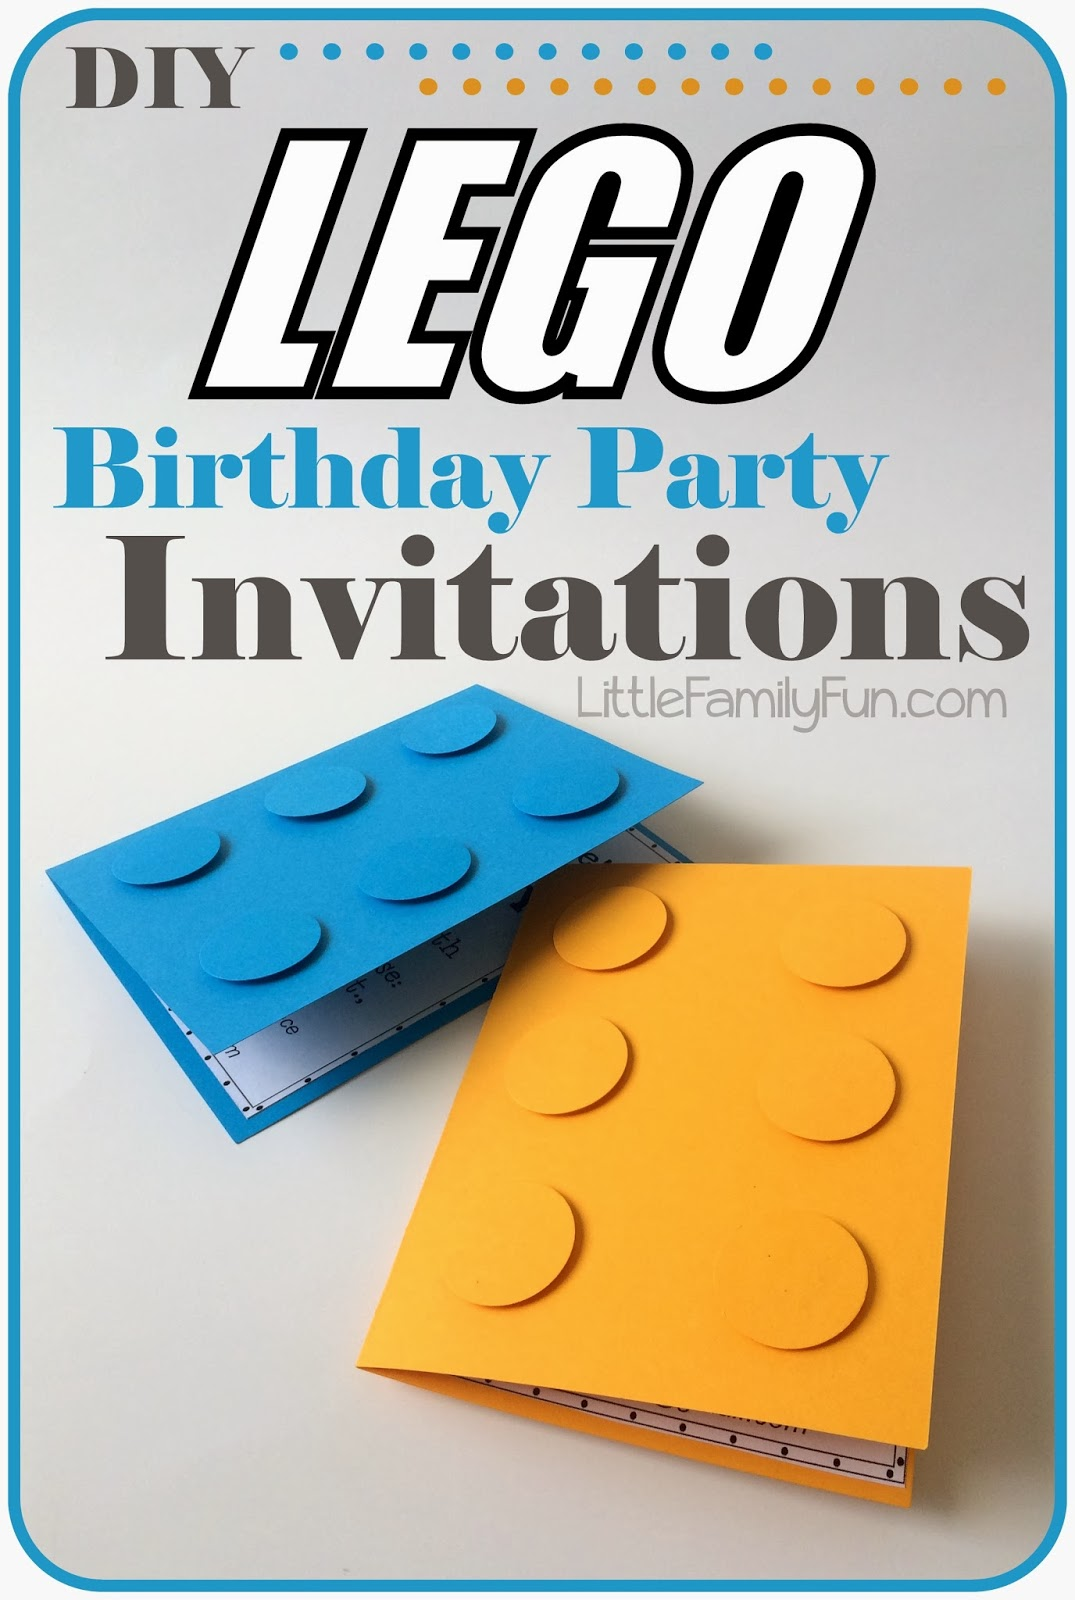 little family fun lego party invitations, Party invitations